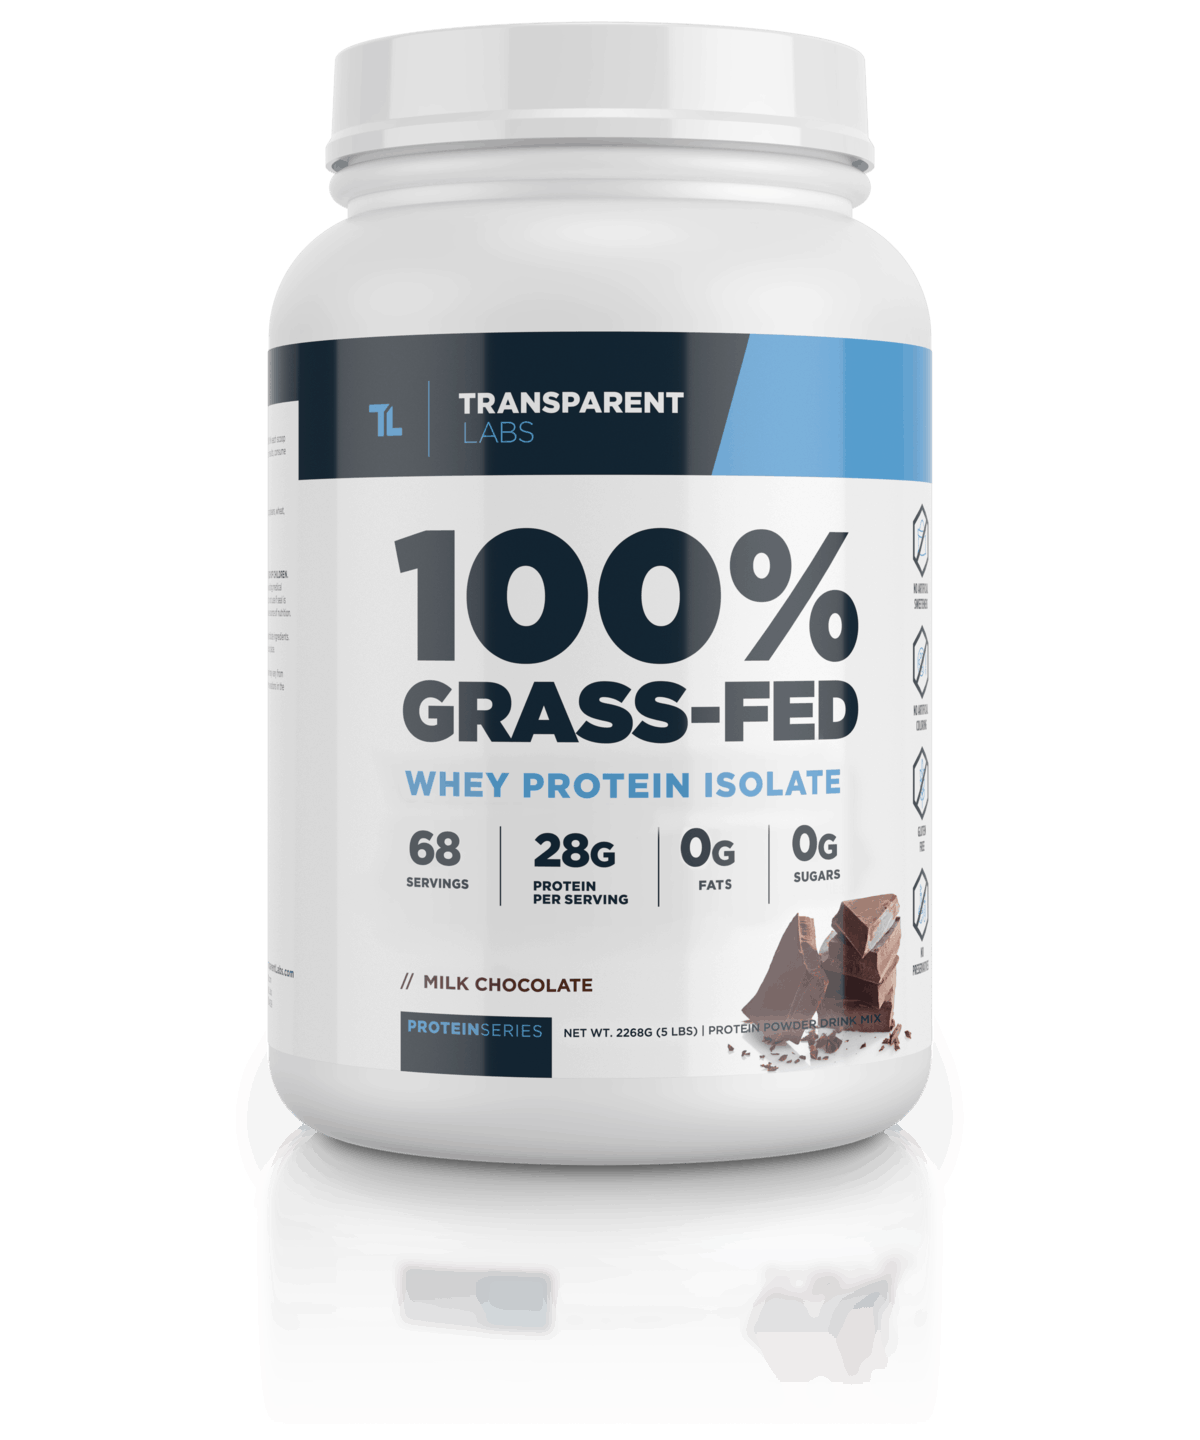 Transparent Labs Grass-Fed Whey Protein Isolate (5lbs)